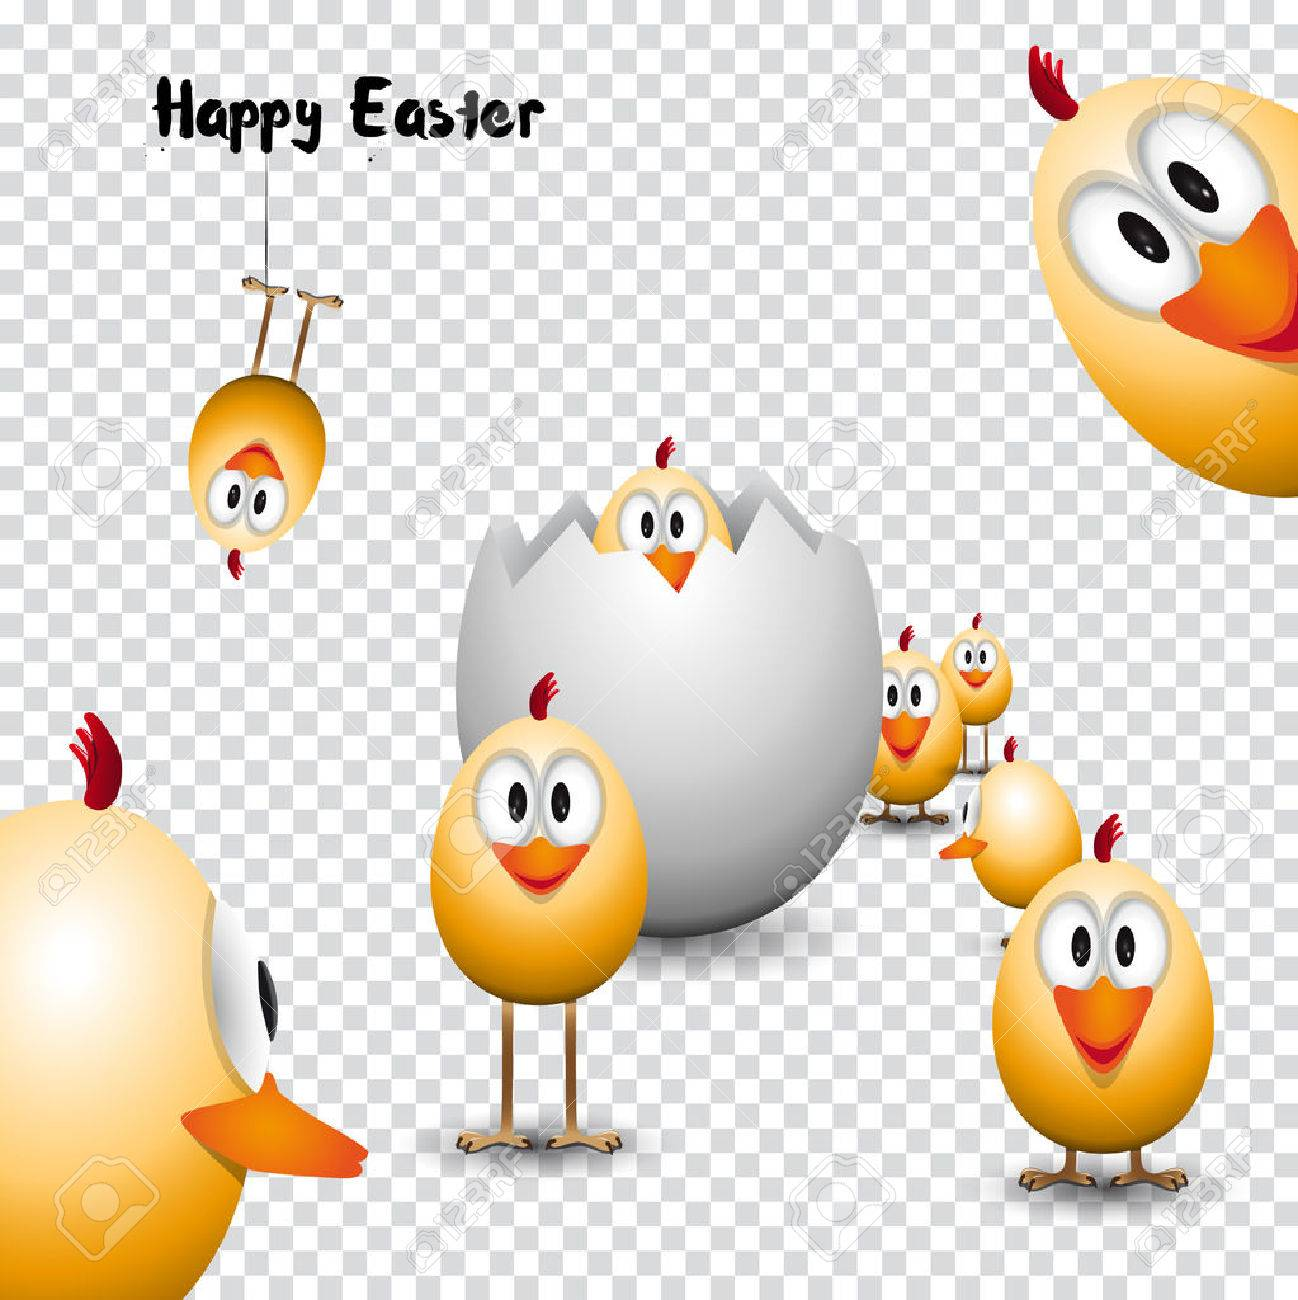 Funny easter eggs chicks happy easter card illustration on funny easter eggs chicks happy easter card illustration on trasparent background stock vector kristyandbryce Choice Image